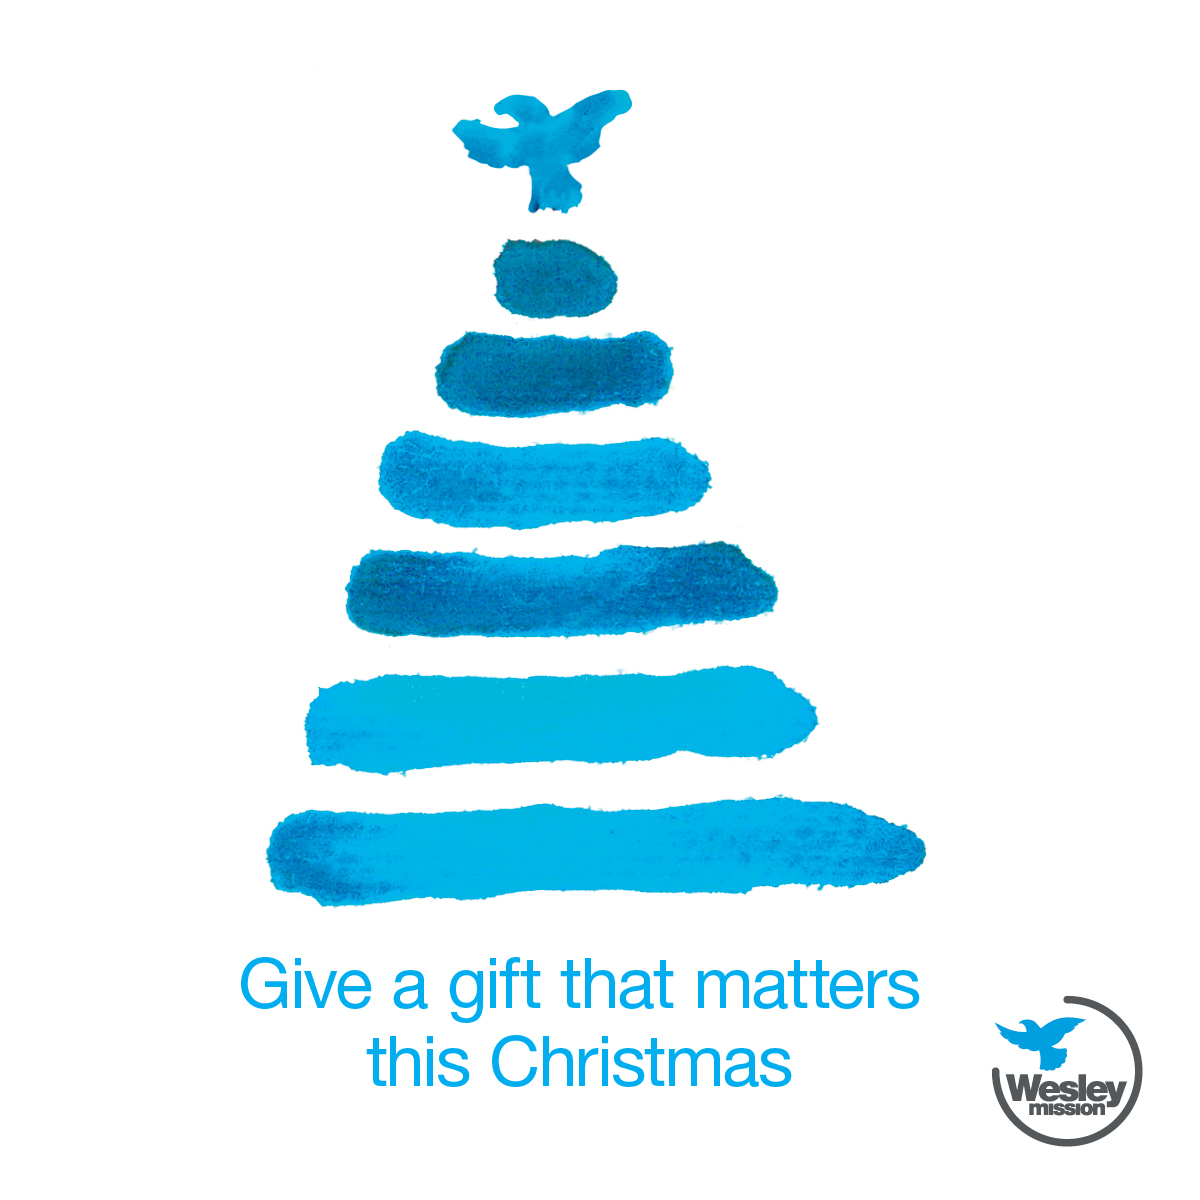 Your school community can make a difference at Christmas time